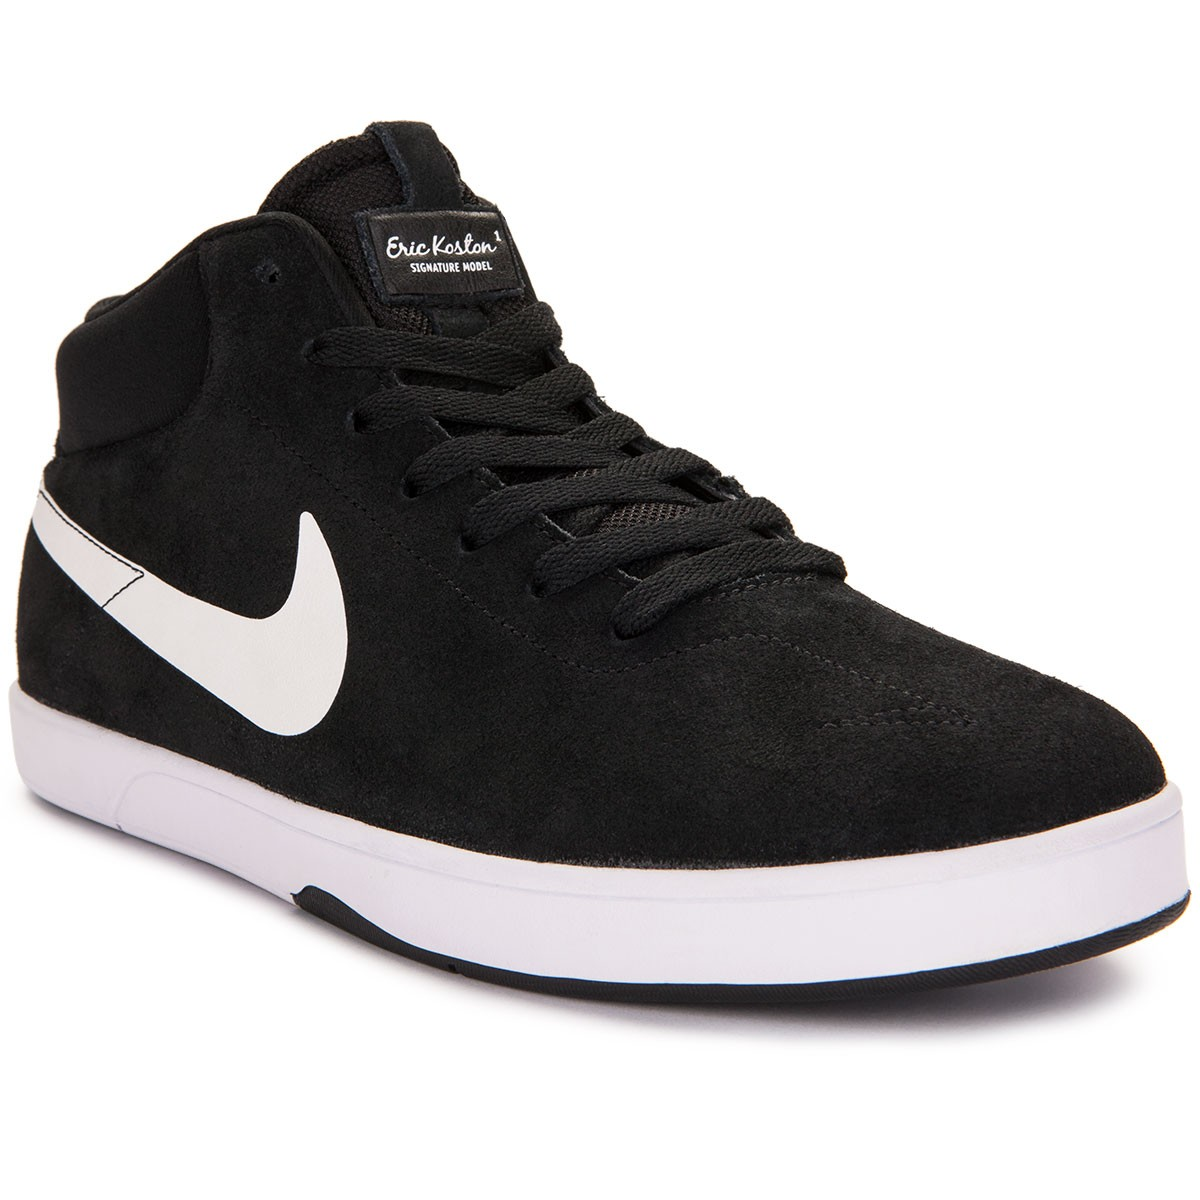 Nike SB Eric Koston Mid Shoes - Black/White/Black - 10.0